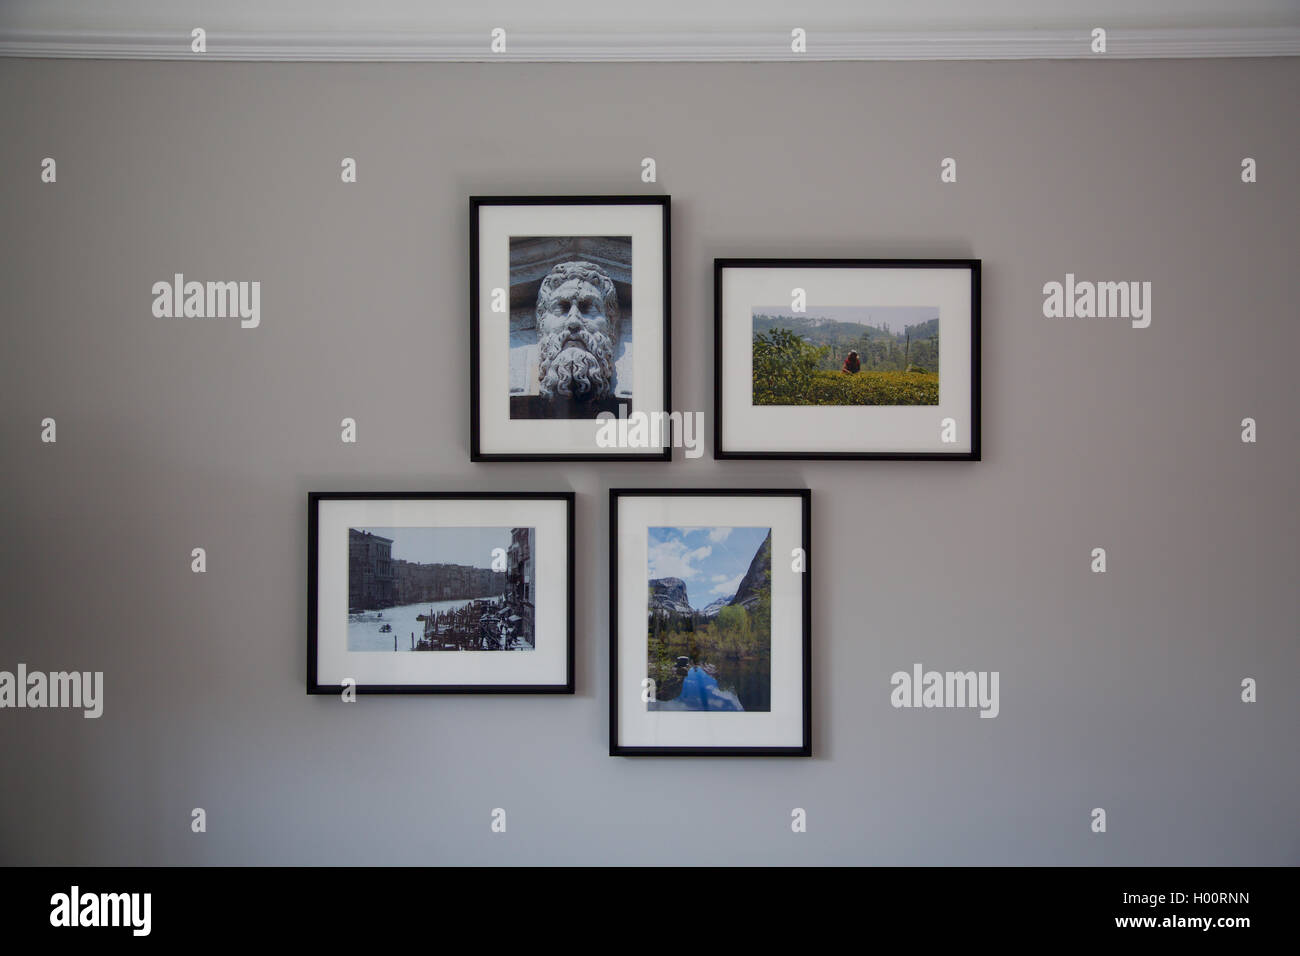 Cluster arrangement set of four picture photos in frames on modern house interior wall - Stock Image